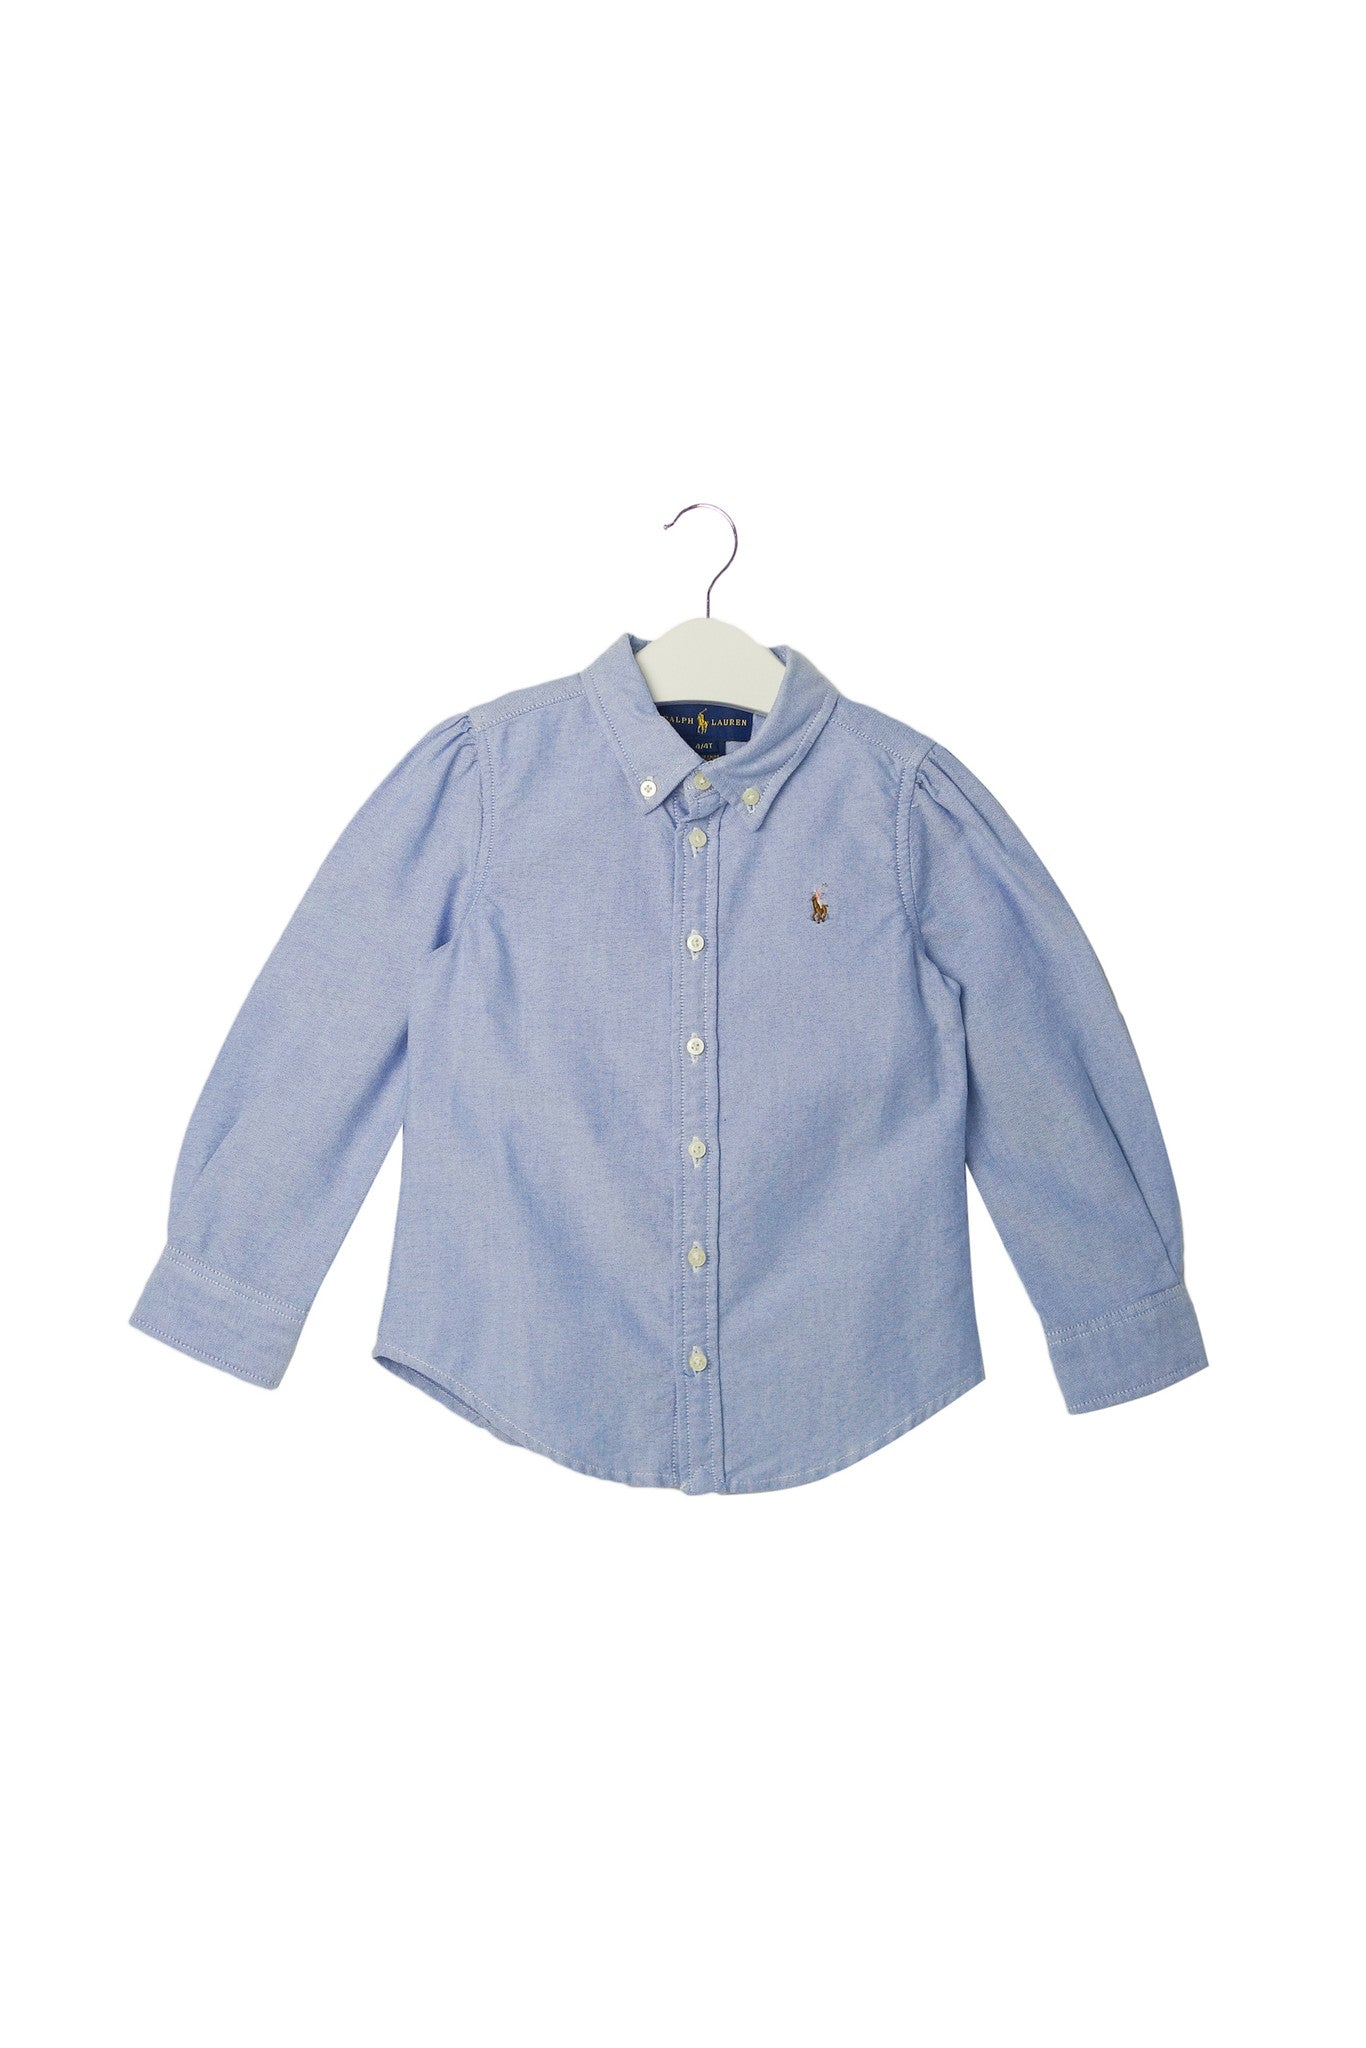 10003054 Ralph Lauren Kids~Shirt 4T at Retykle